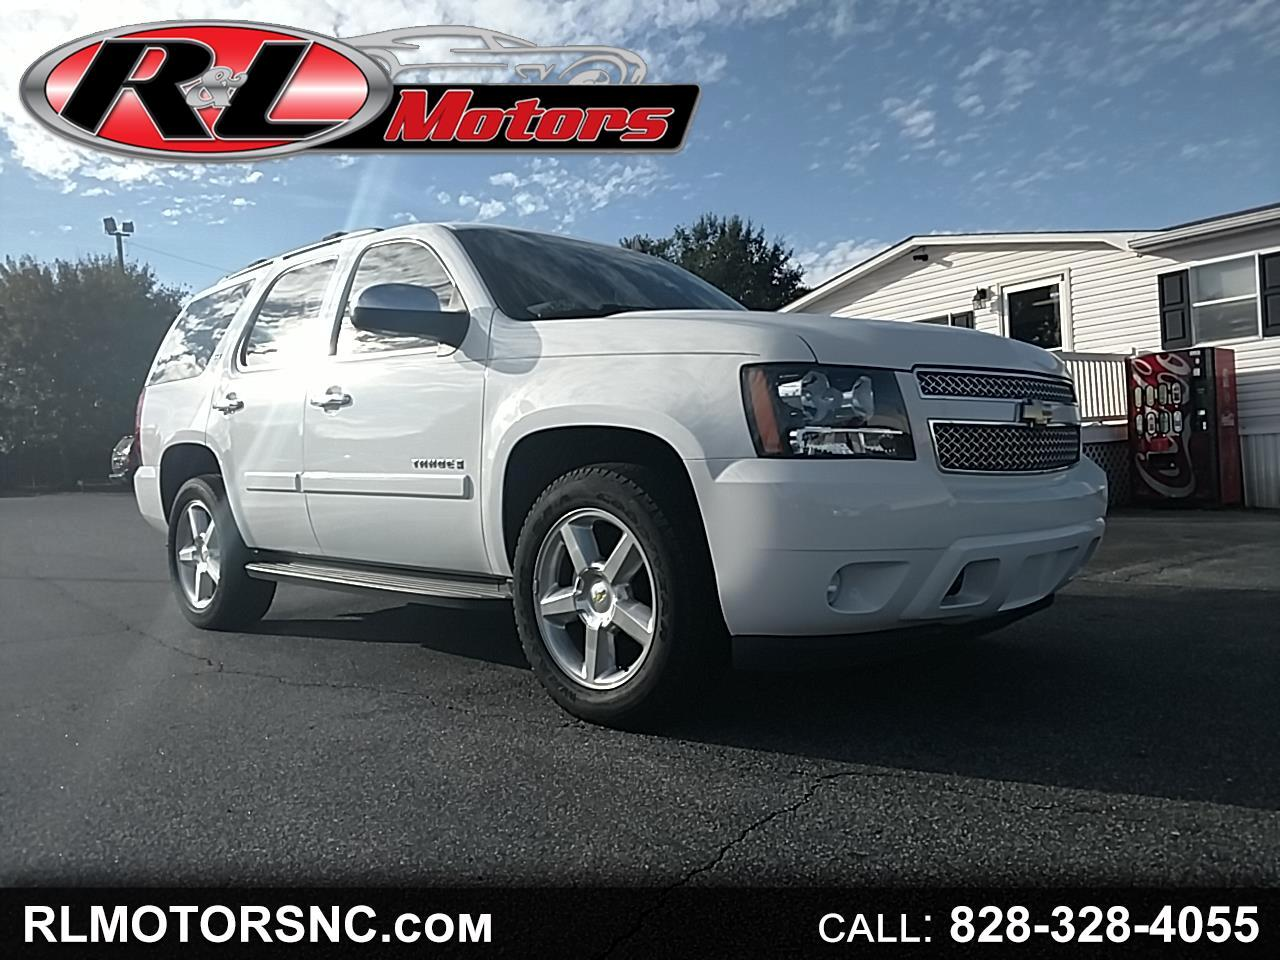 Buy Here Pay Here 2007 Chevrolet Tahoe For Sale In Hickory Nc 28601